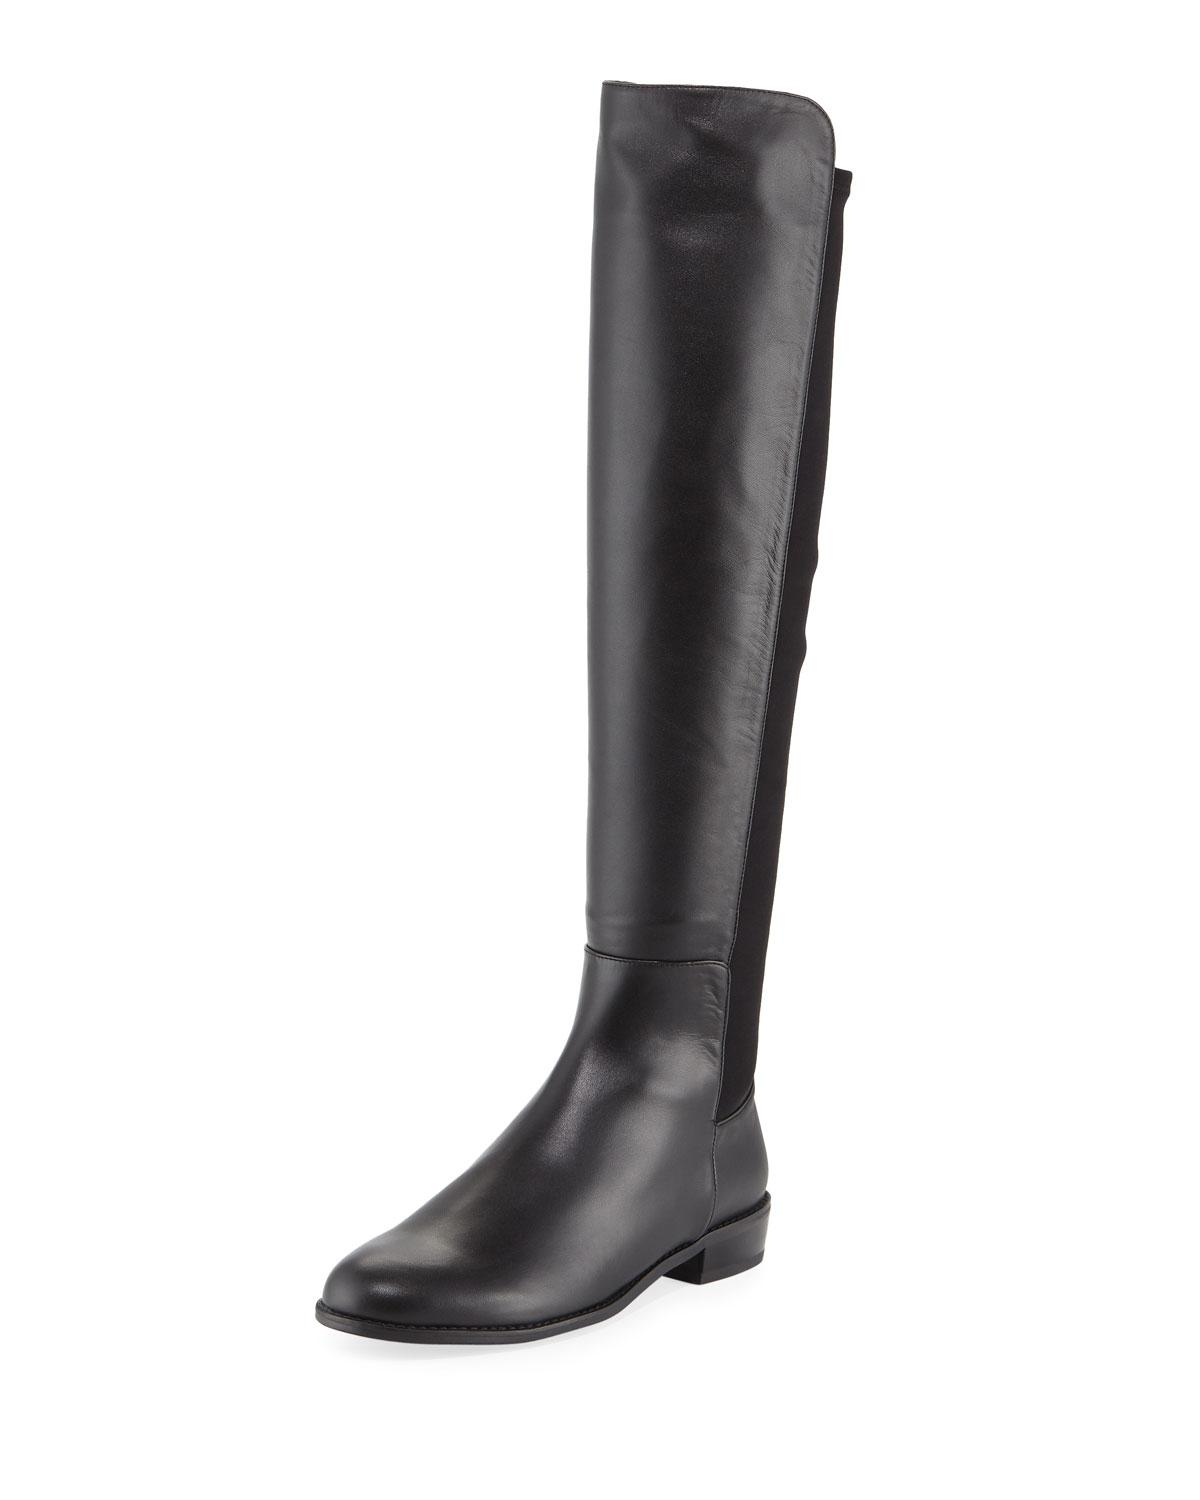 77772363a11 Lyst - Stuart Weitzman Mainstay Napa Over-the-knee Boot in Black